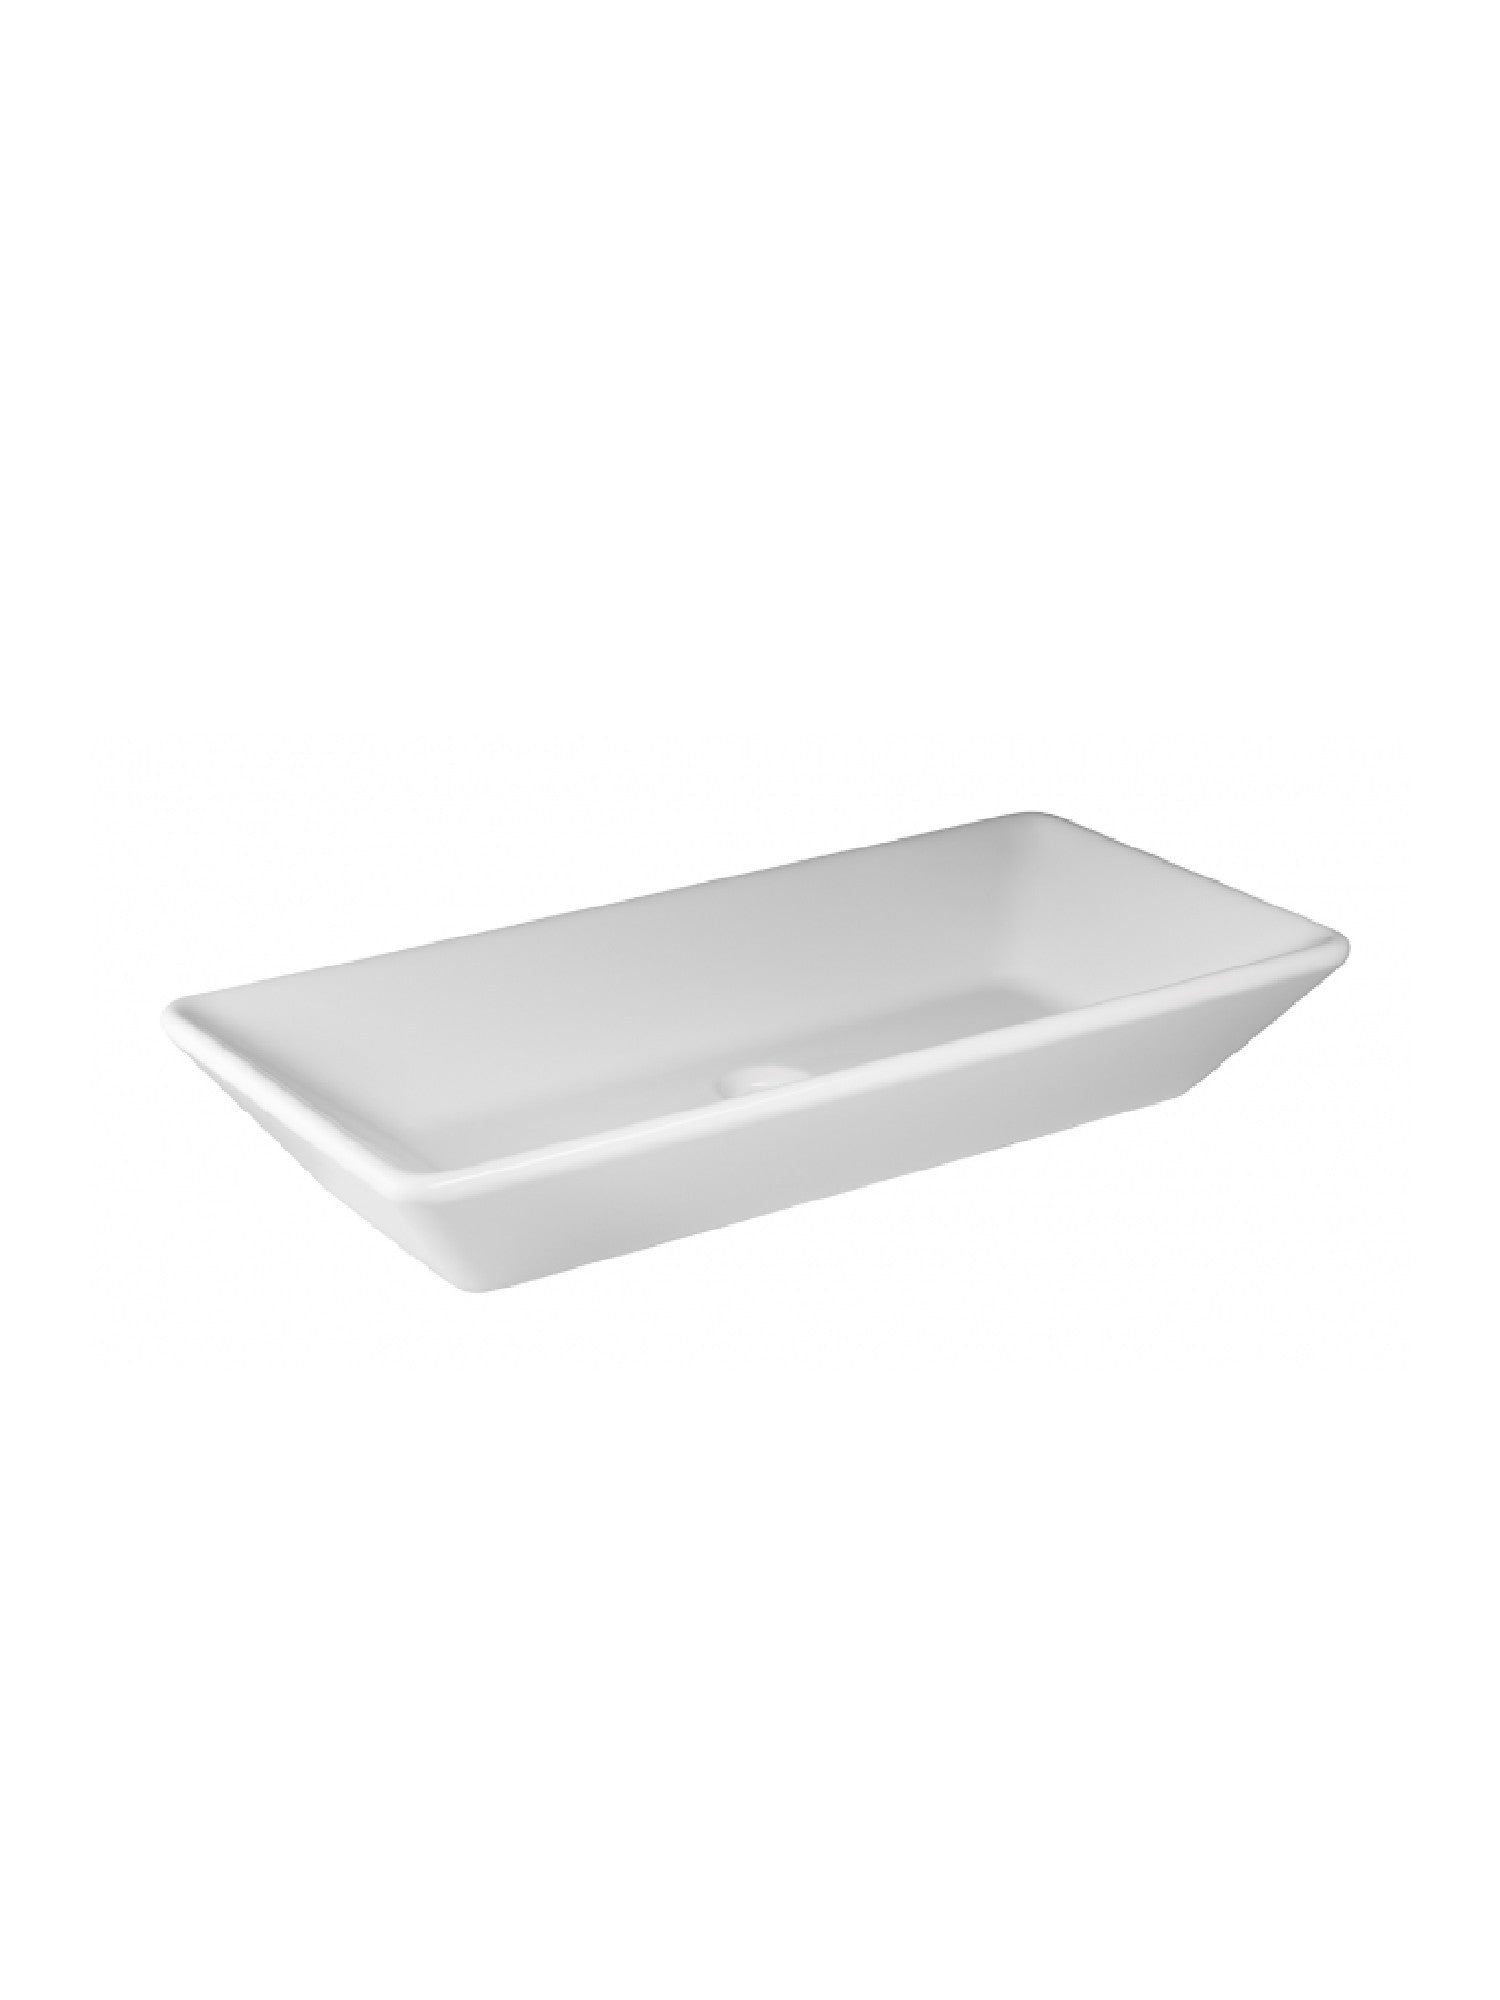 Sign Countertop Basin #108950